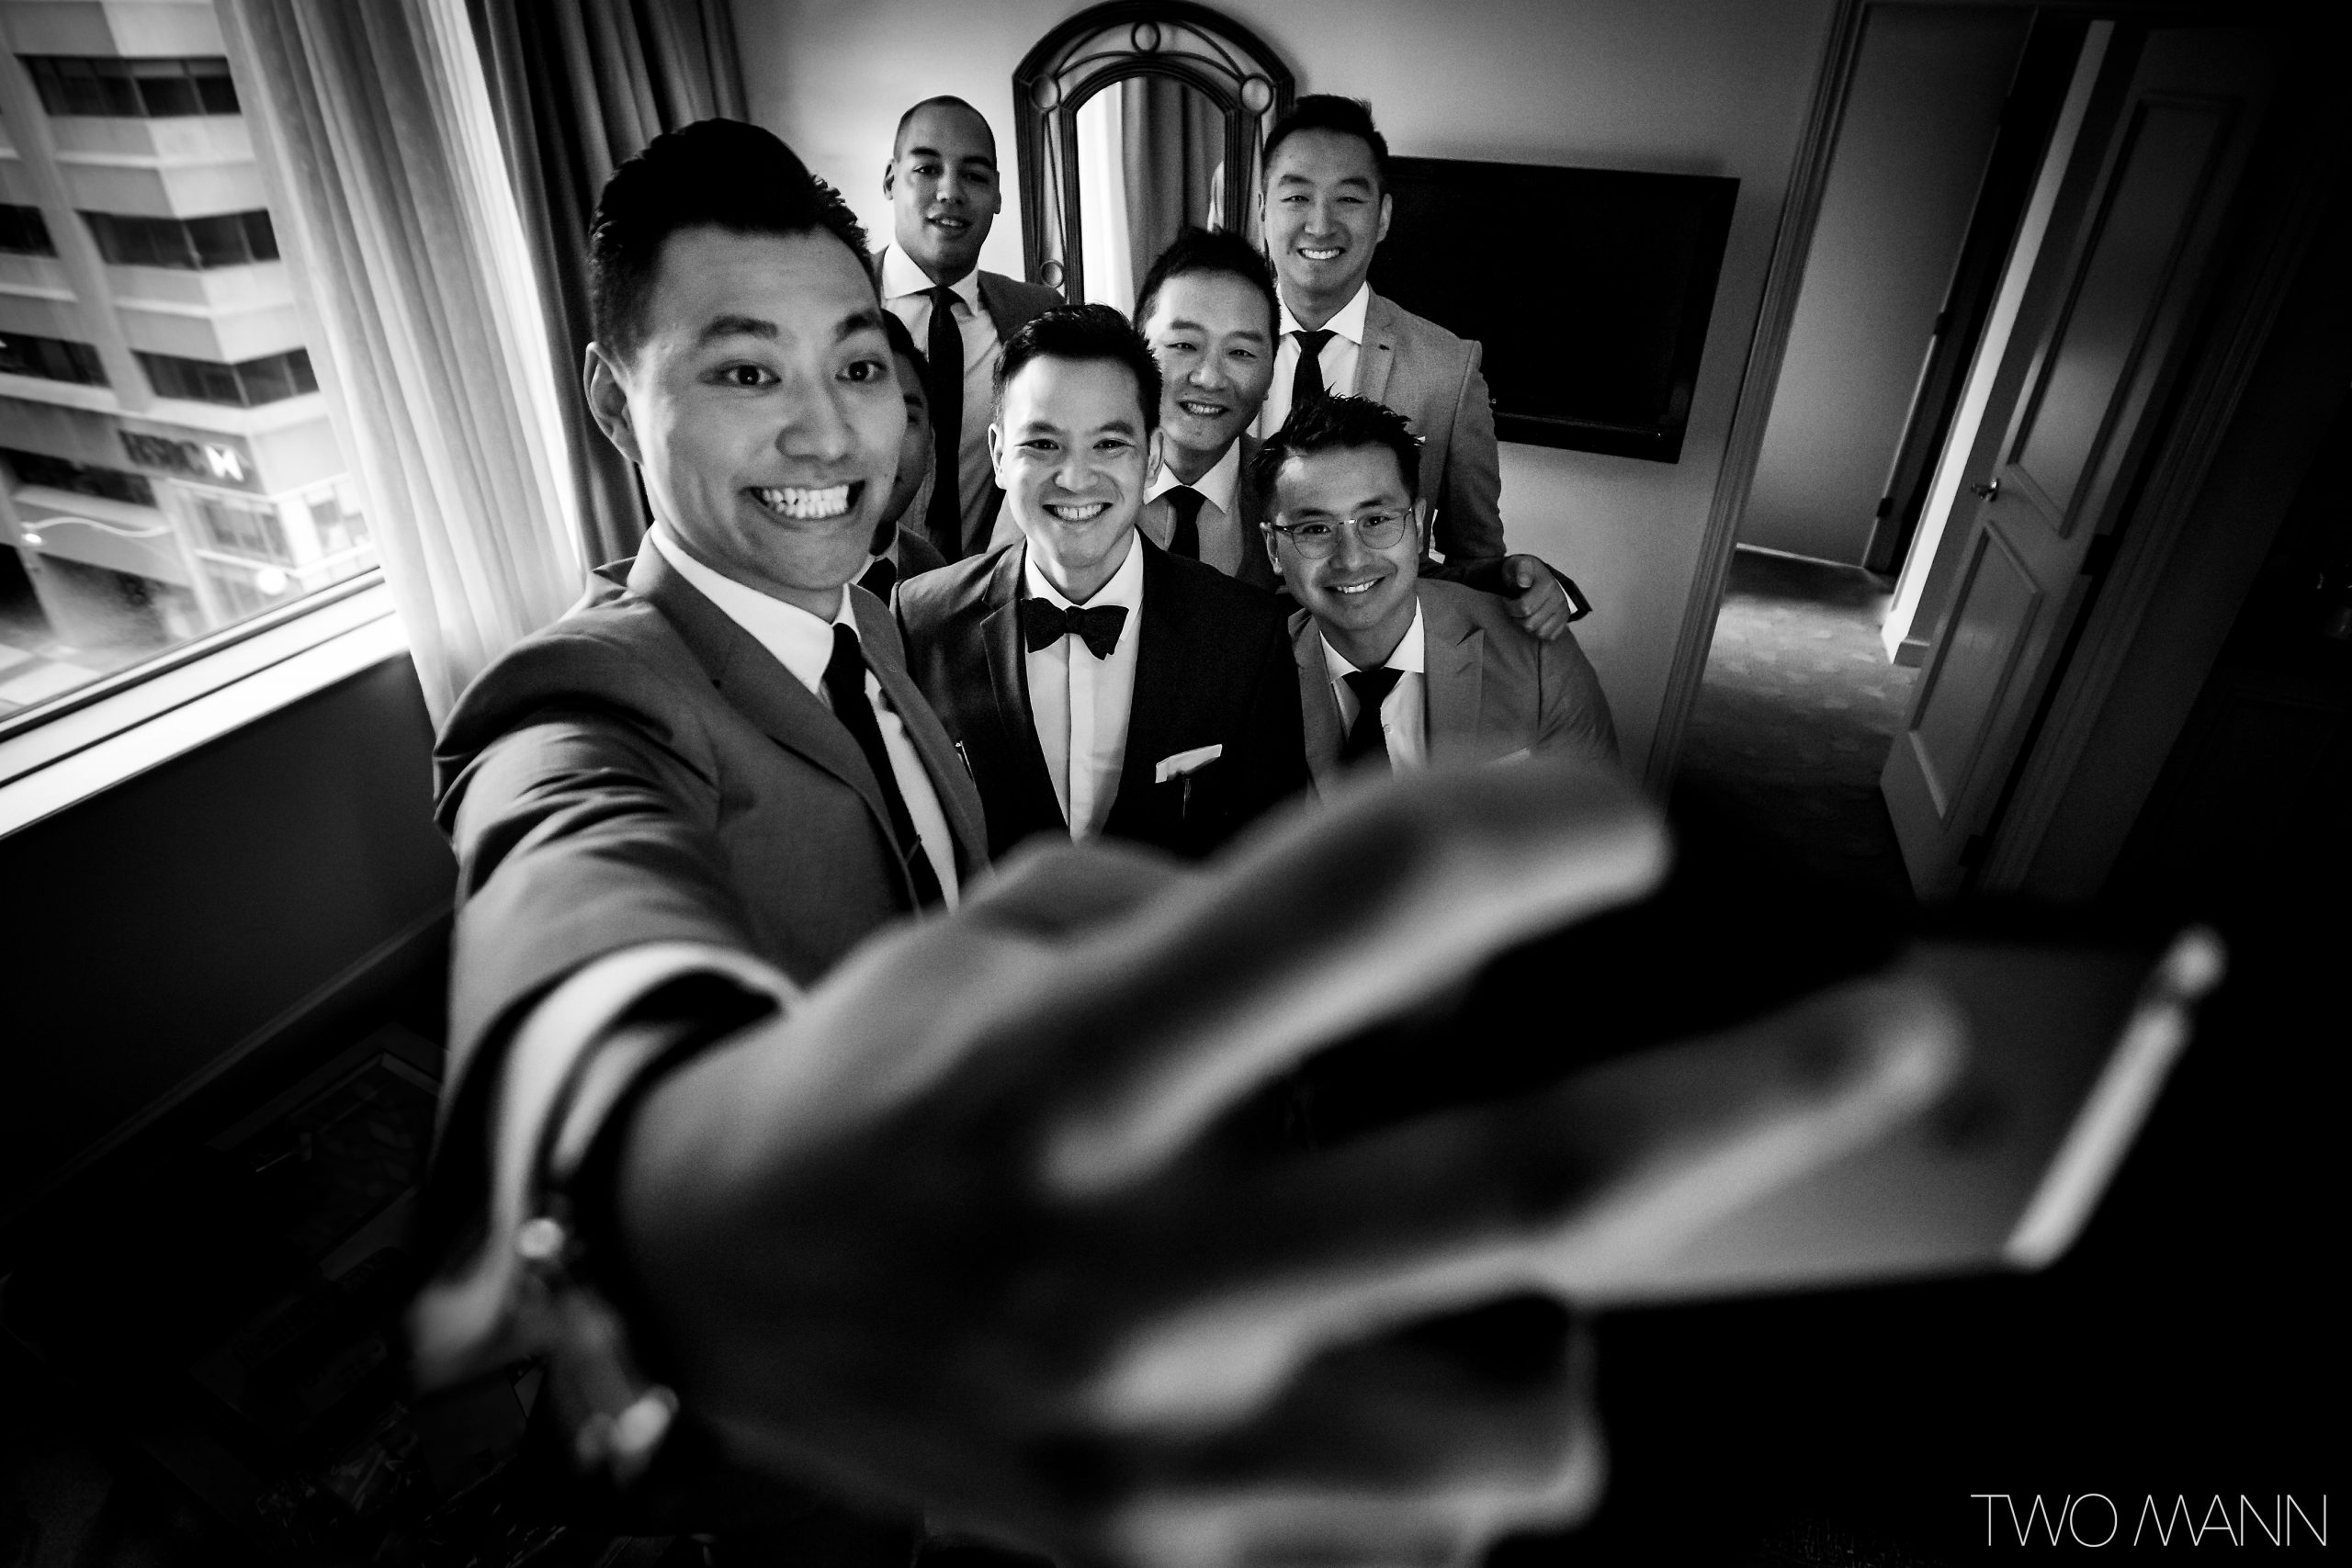 groomsman takes bridal party selfie with groom and groomsmen